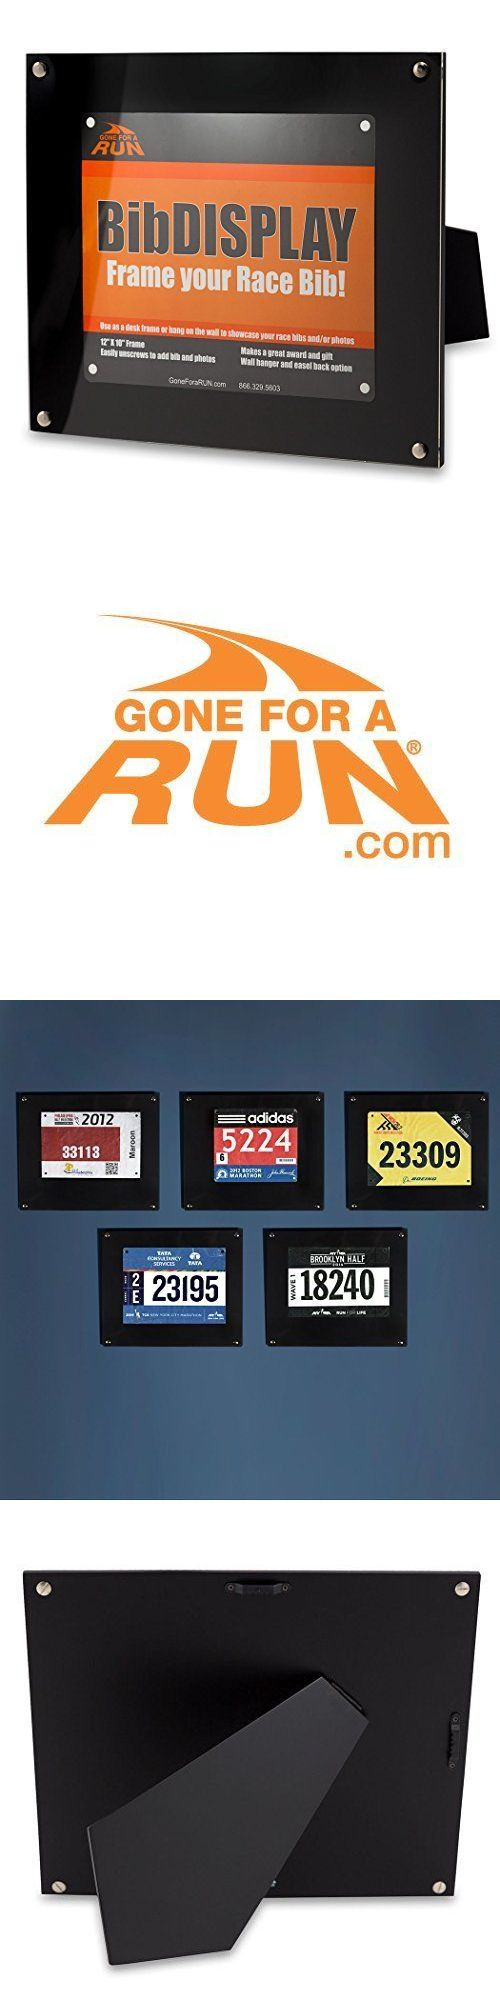 Other Snowmobiling 4847: Runners Race Bib Display Frame Versatile Wall Or Table Display By Gone For A Run -> BUY IT NOW ONLY: $119.99 on eBay!